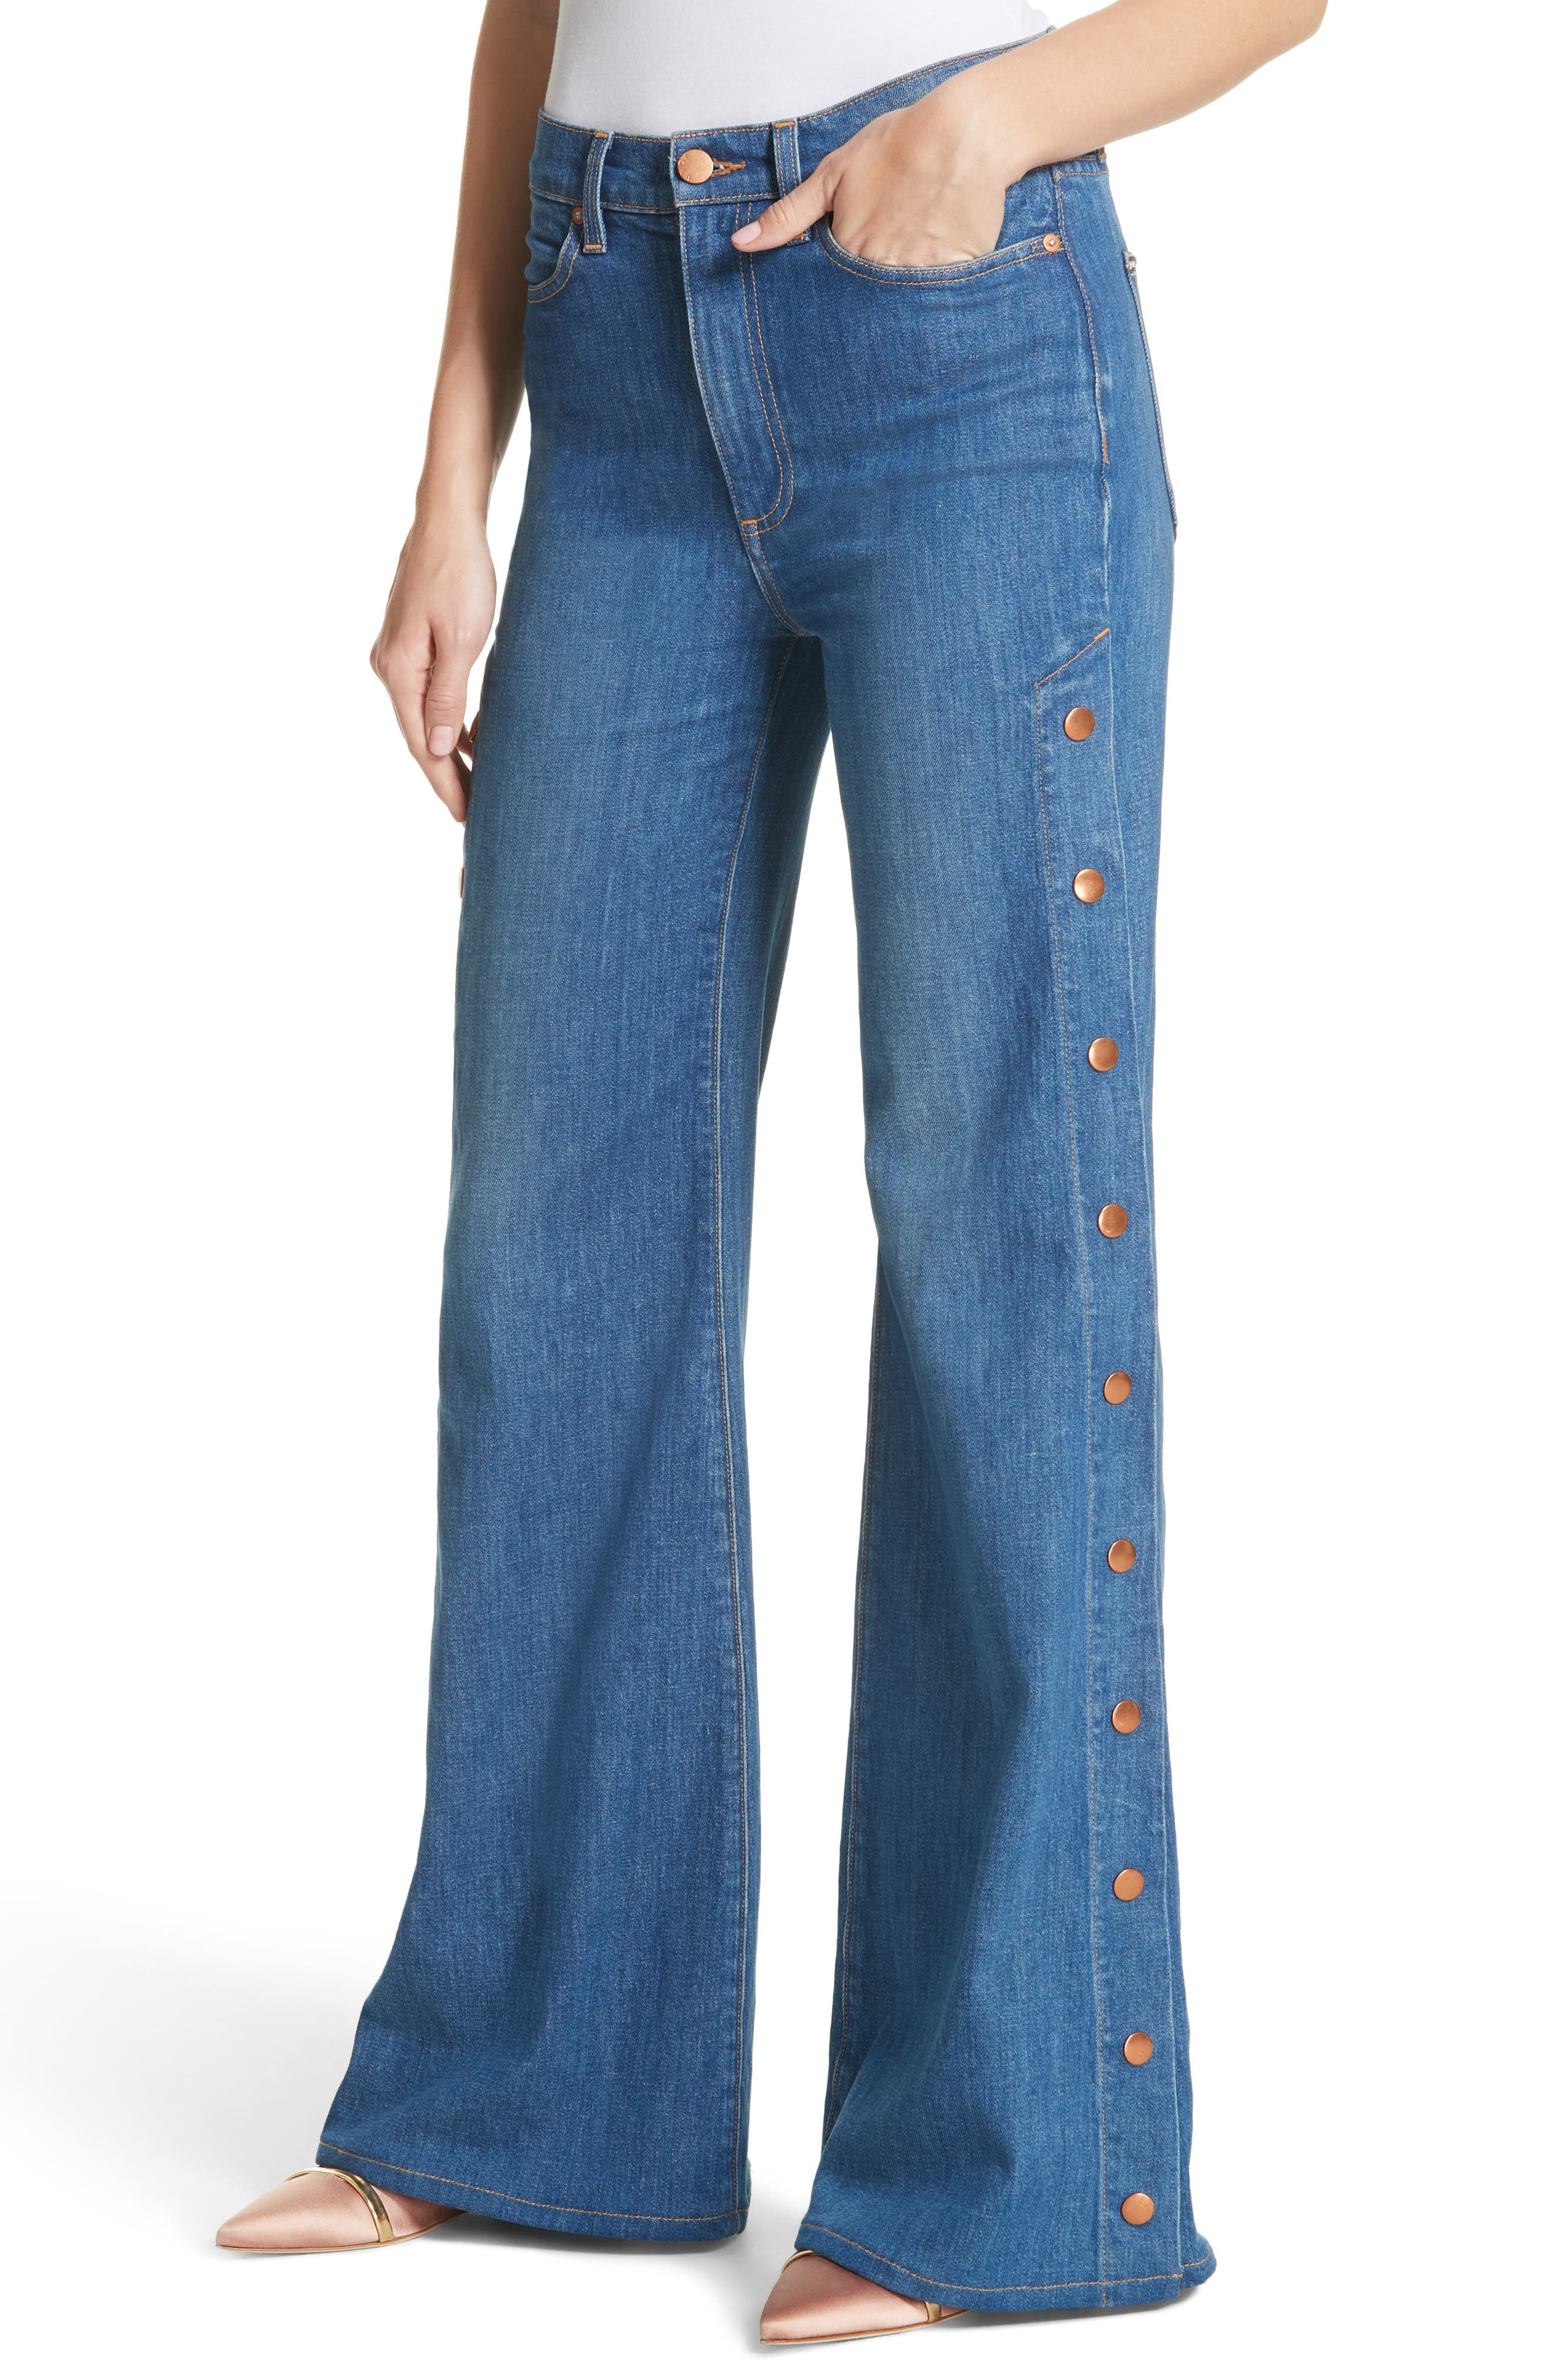 AO.LA Gorgeous Snap Side Flare Leg Jeans,                             Alternate thumbnail 4, color,                             460